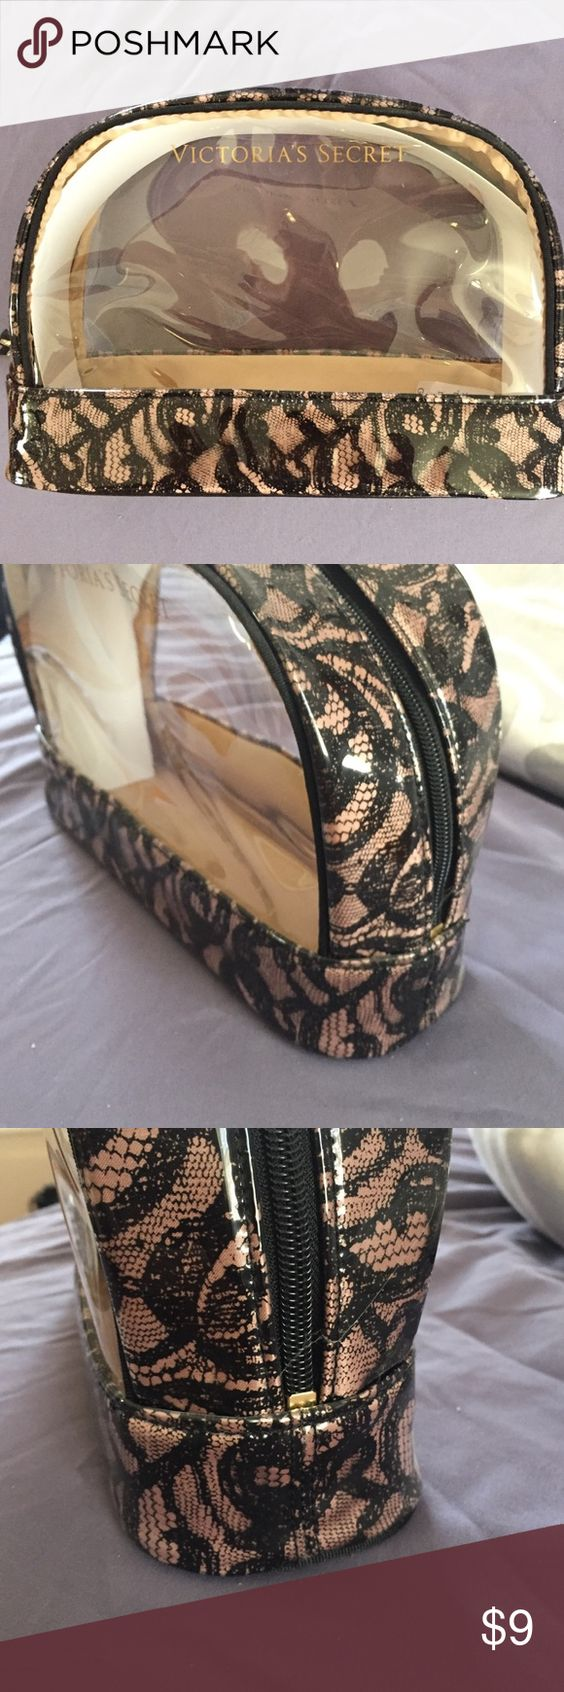 Victoria's Secret Make up Bag See thru make up bag by Victoria's Secret. Can fit all your makeup in this one bag perfect for Tavel, pretty lace design. Victoria's Secret Bags Cosmetic Bags & Cases